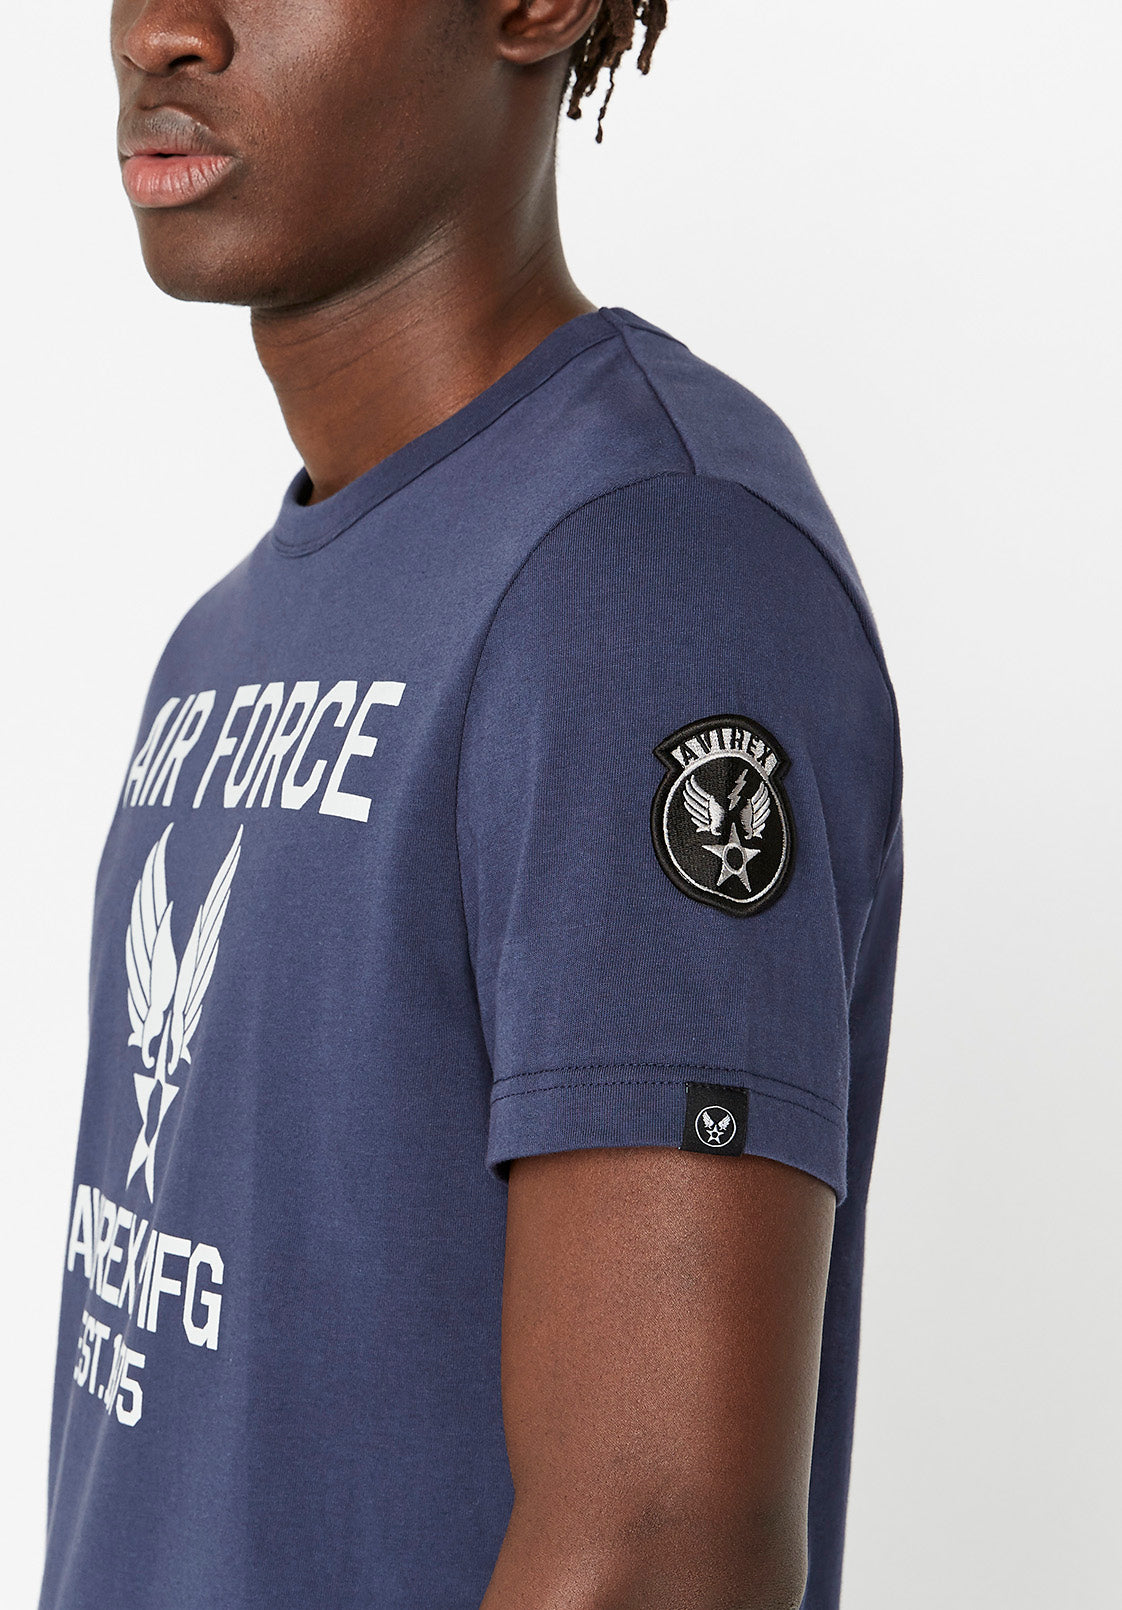 Side view of blue t-shirt with Avirex Wingstar patch on left shoulder